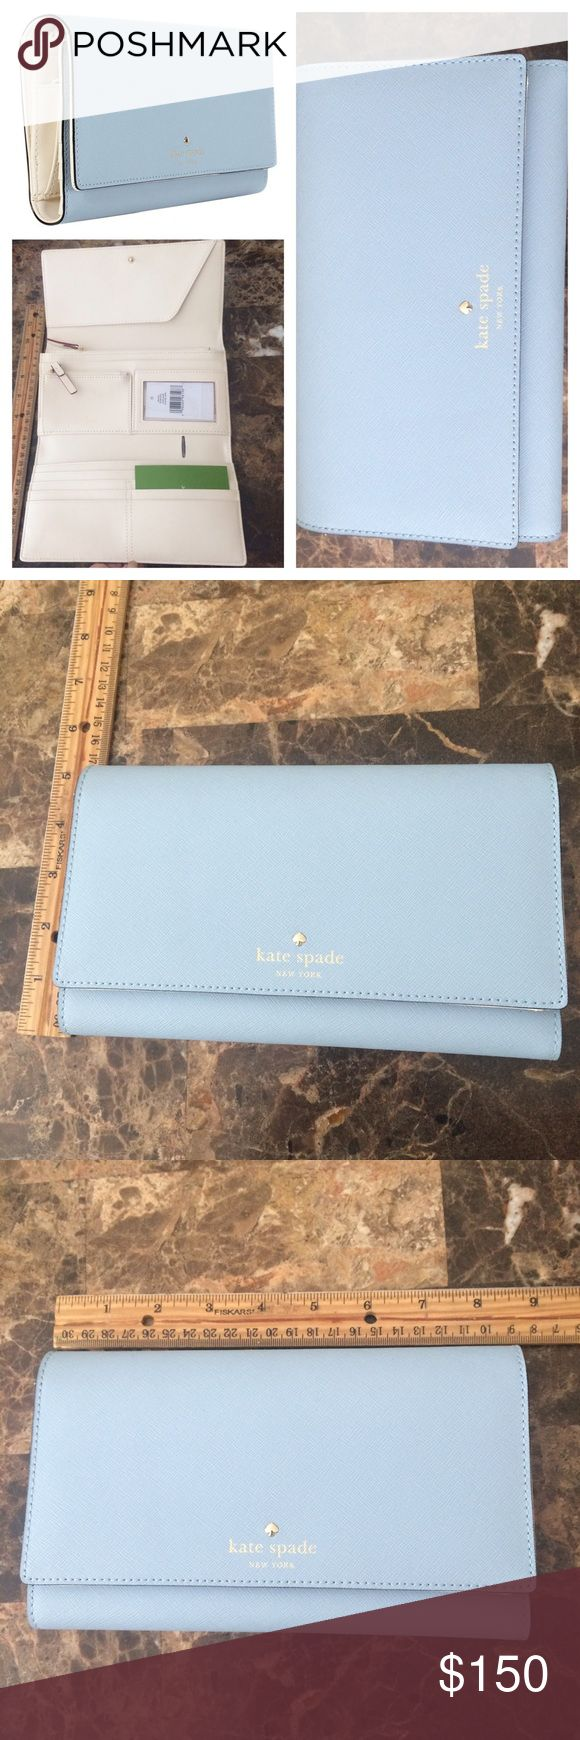 Kate Spade Mikas Pond Wallet - Arctic Blue This is a large wallet - similar to a clutch size. New that tags. 100% Leather Kate Spade New York Mikas Pond Phoenix Tri-fold wallet -8 credit card slots, one billfold, interior slide pocket, interior zipper pocket, zipper change compartment and an id window. Crosshatched leather with smooth leather trim, and gold foil embossed Kate Spade New York signature with spade stud kate spade Bags Wallets